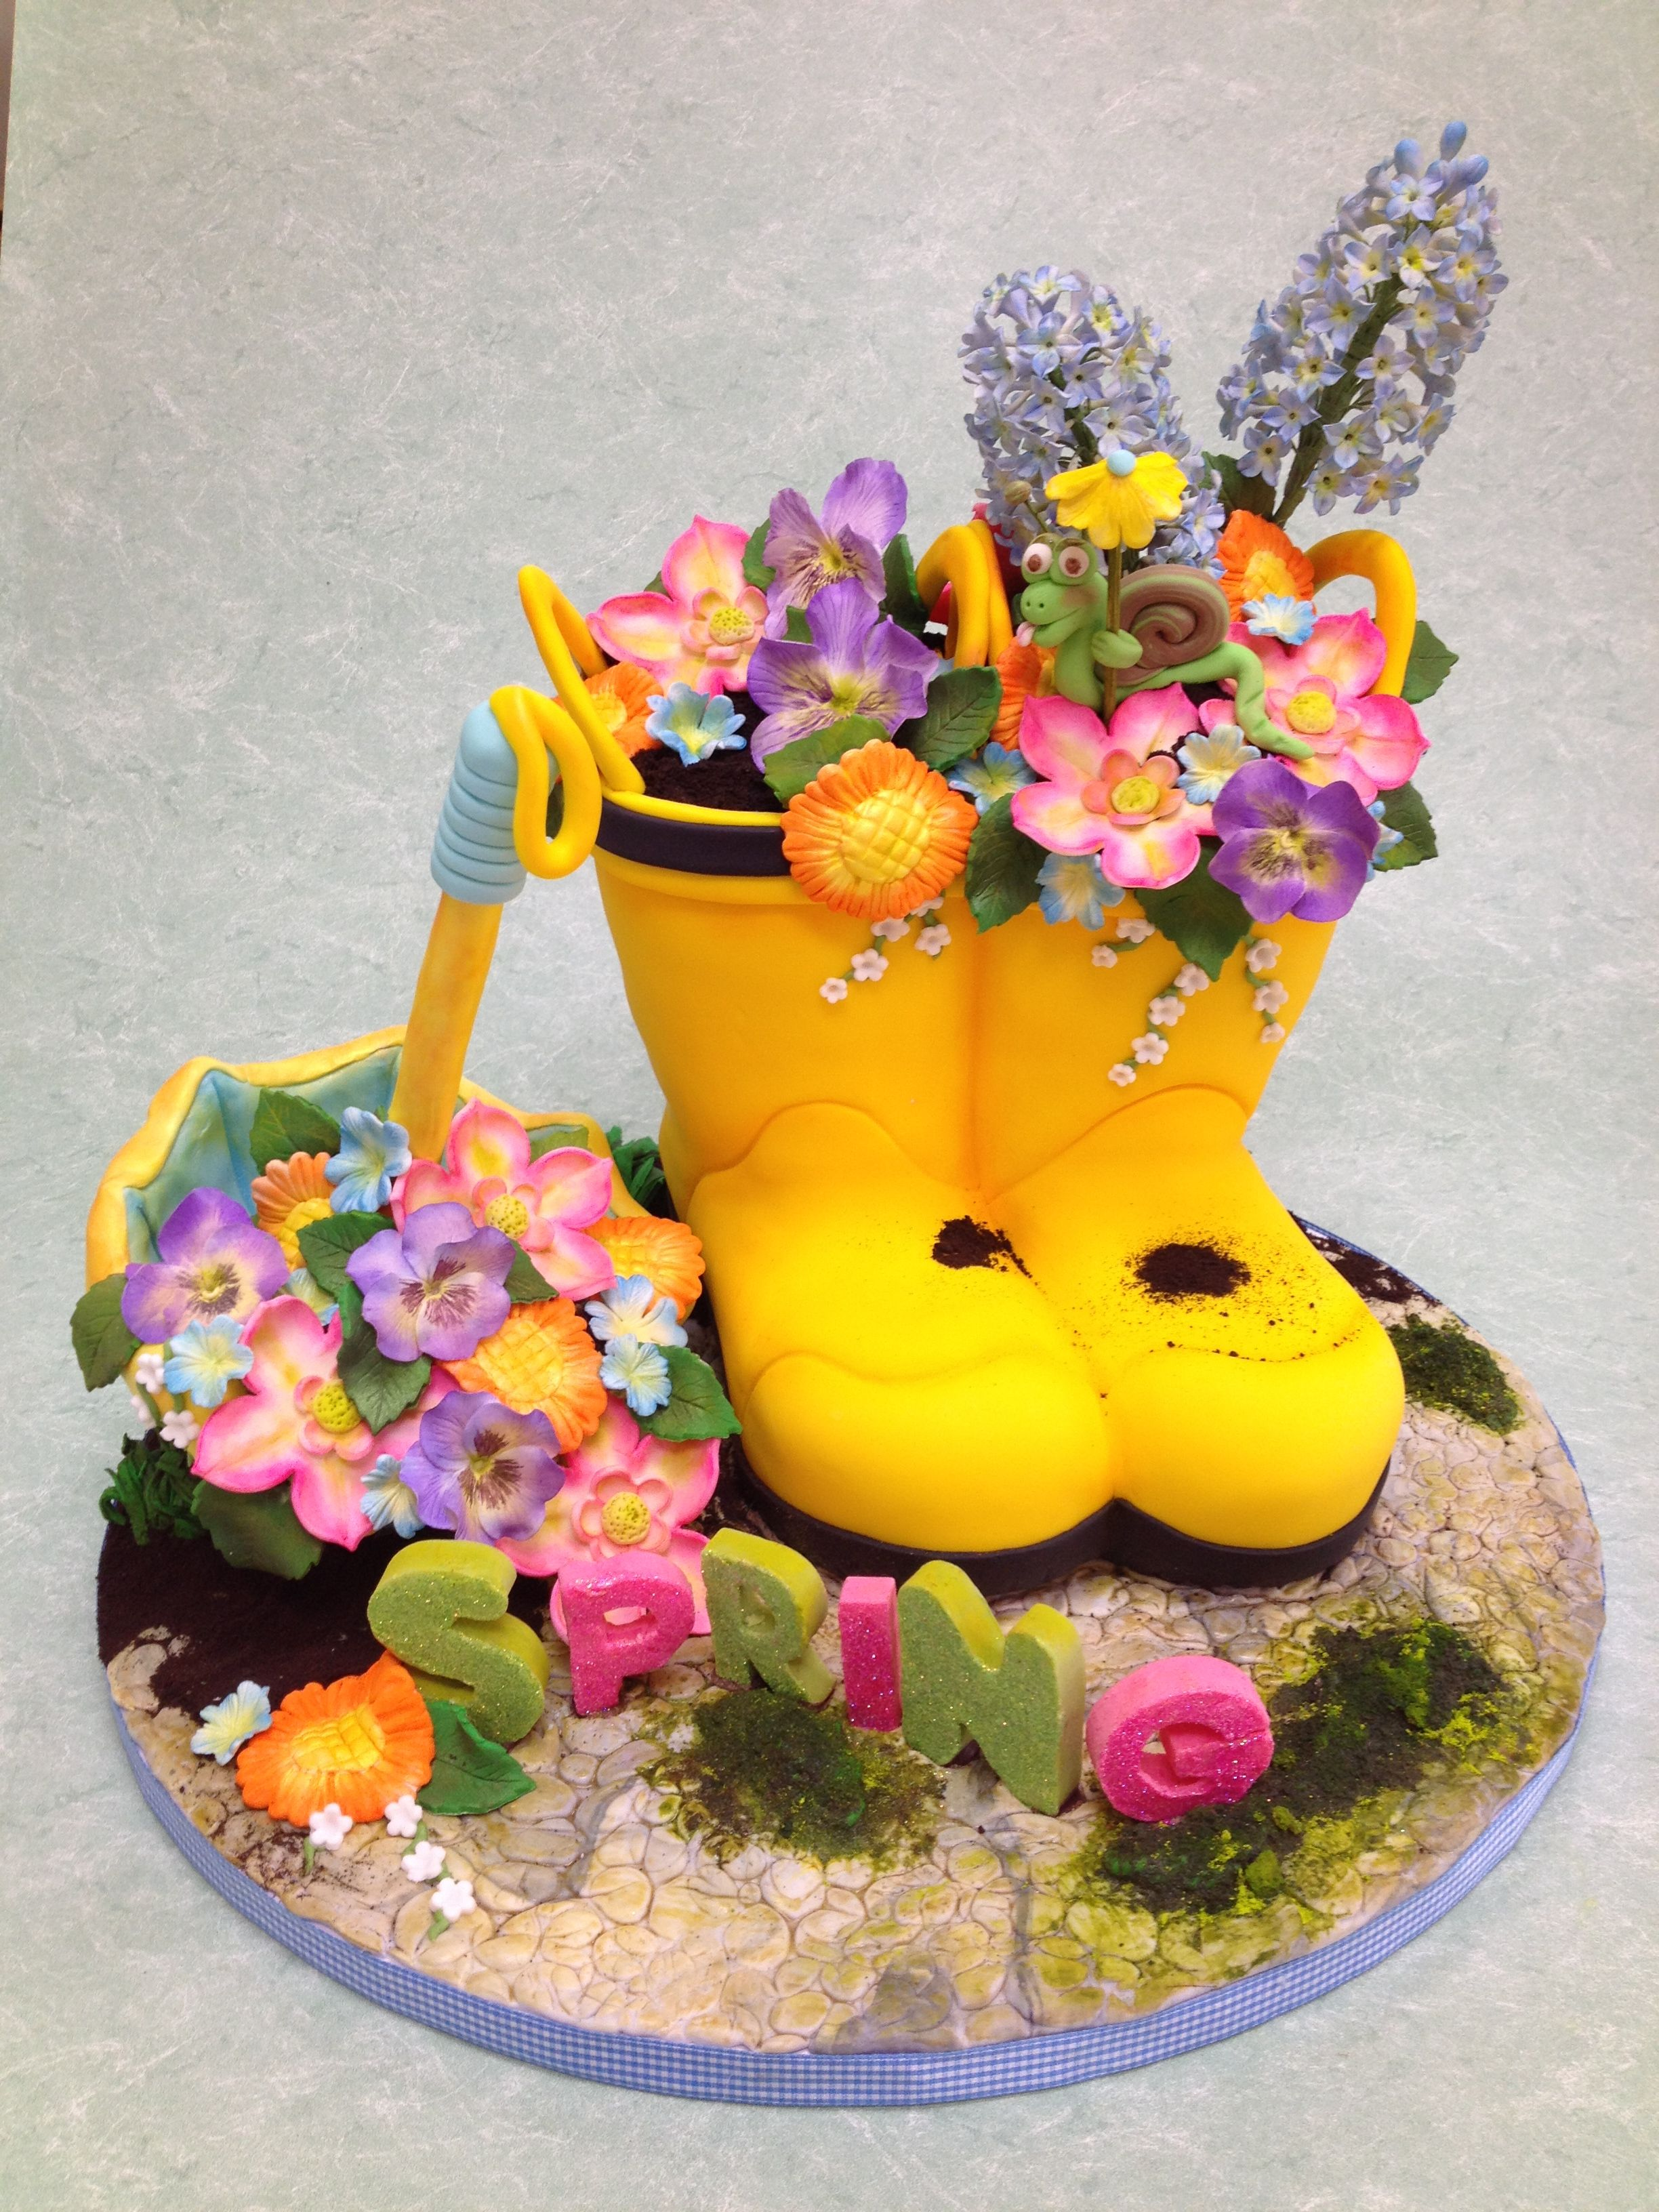 springtime rain boots cake decorating class by susan carberry 2 day rh pinterest com Online Cake Classes Golf Wedding Cake